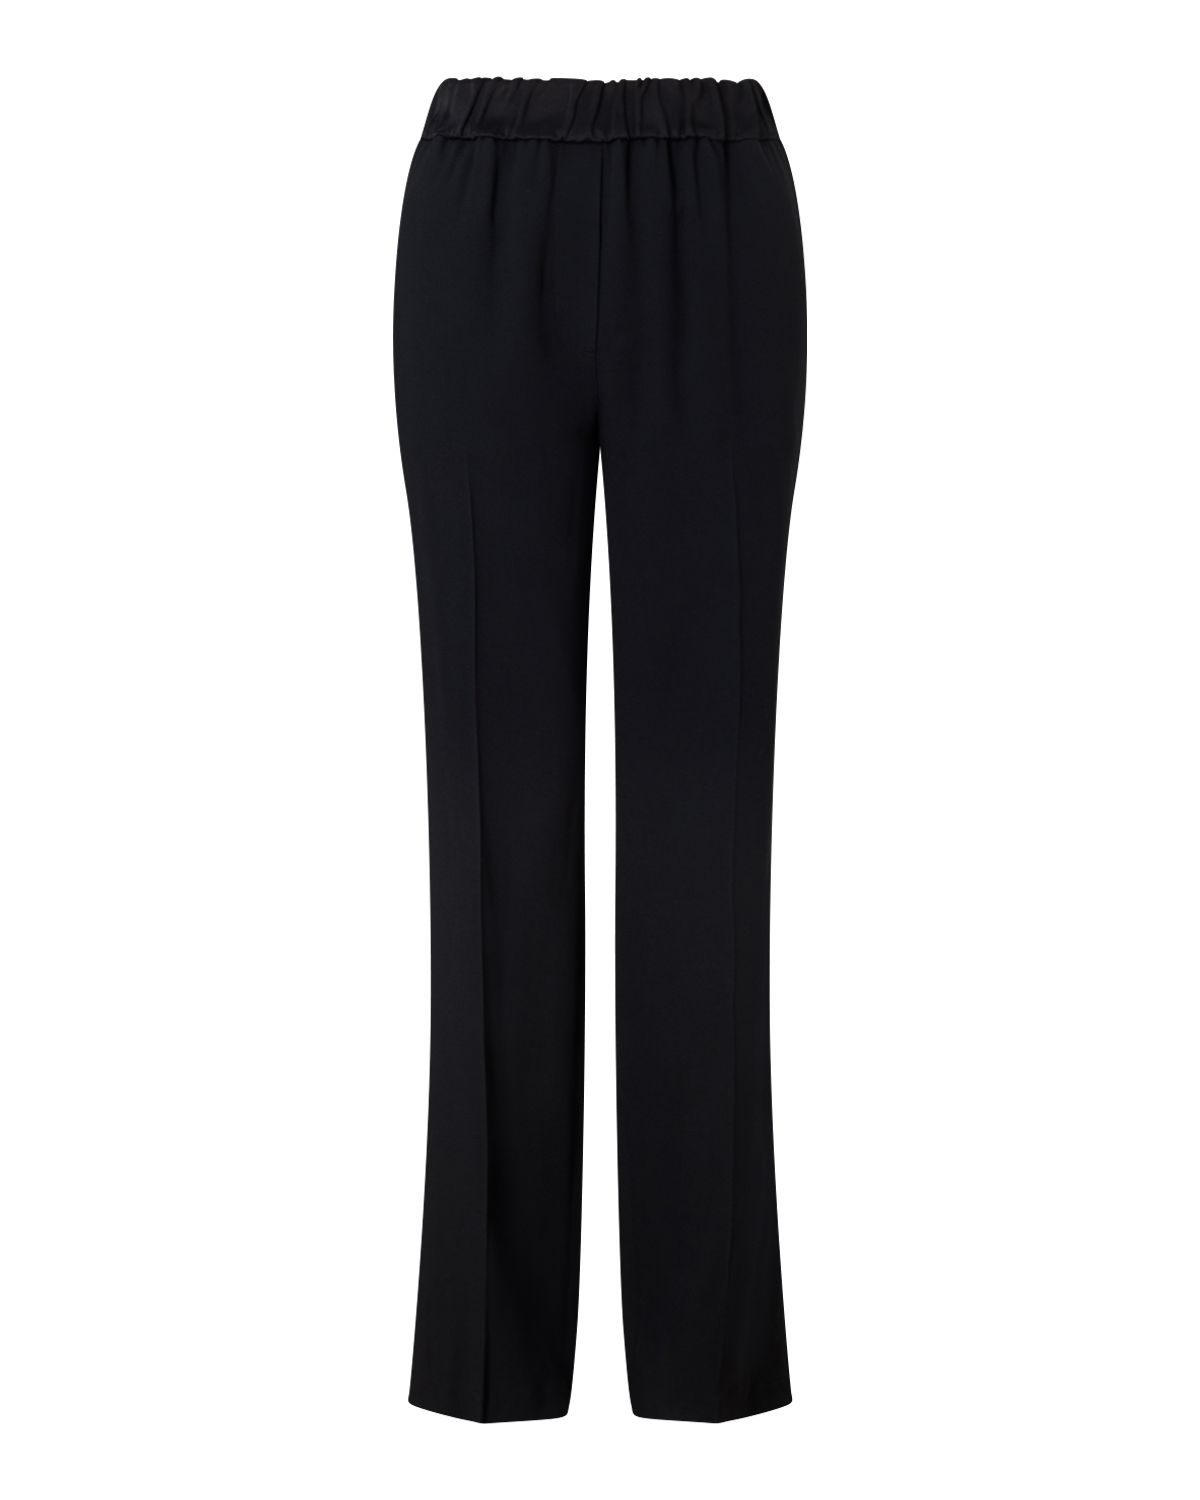 Jigsaw Crepe Relaxed Parallel Trouser, Black